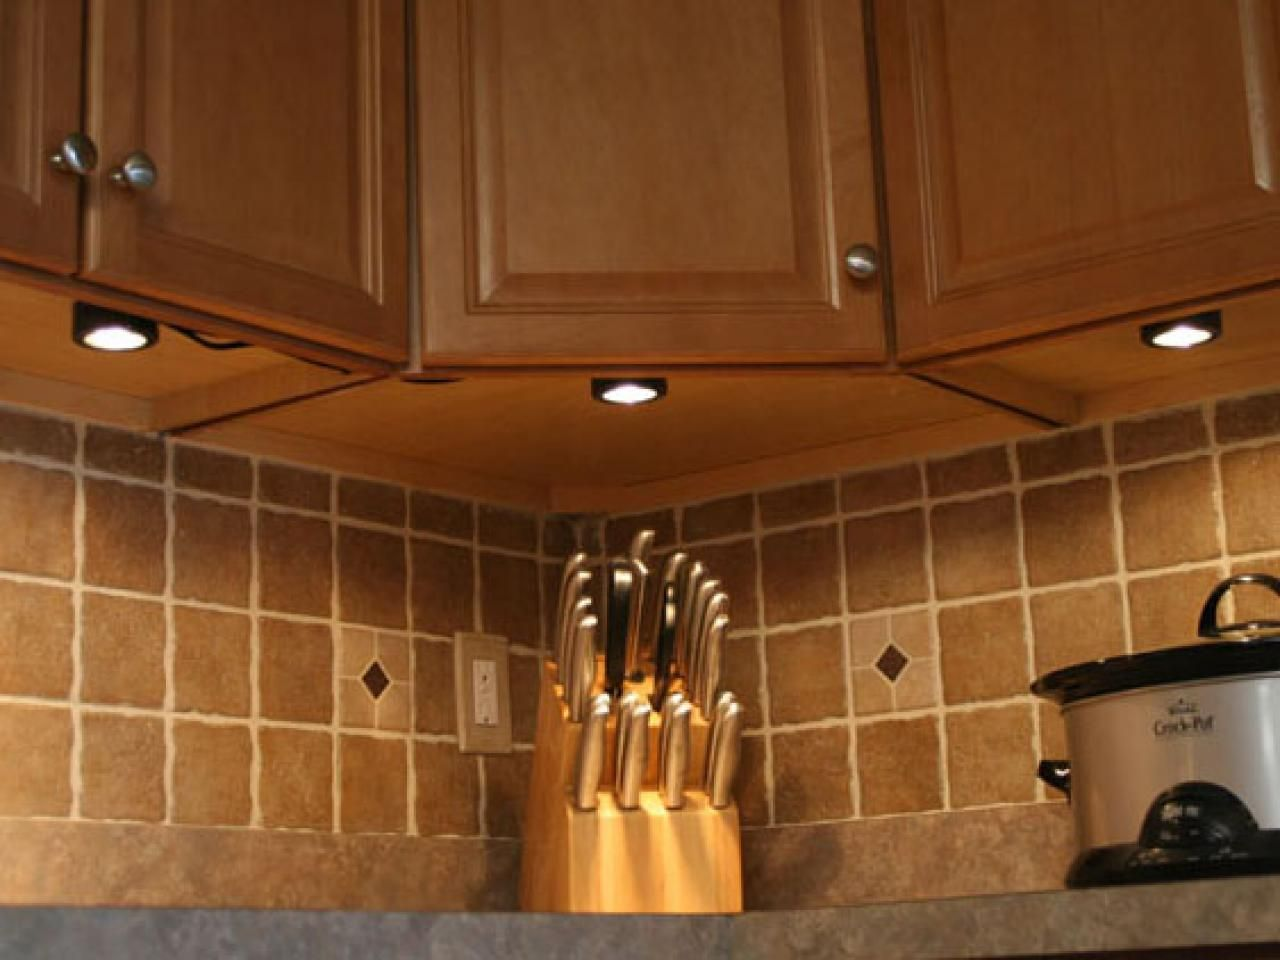 Lighting Under Cabinets Can Add A Dramatic Accent To Your Kitchen Or Bar Installing Under Cabinet Lighting Kitchen Lighting Design Light Kitchen Cabinets